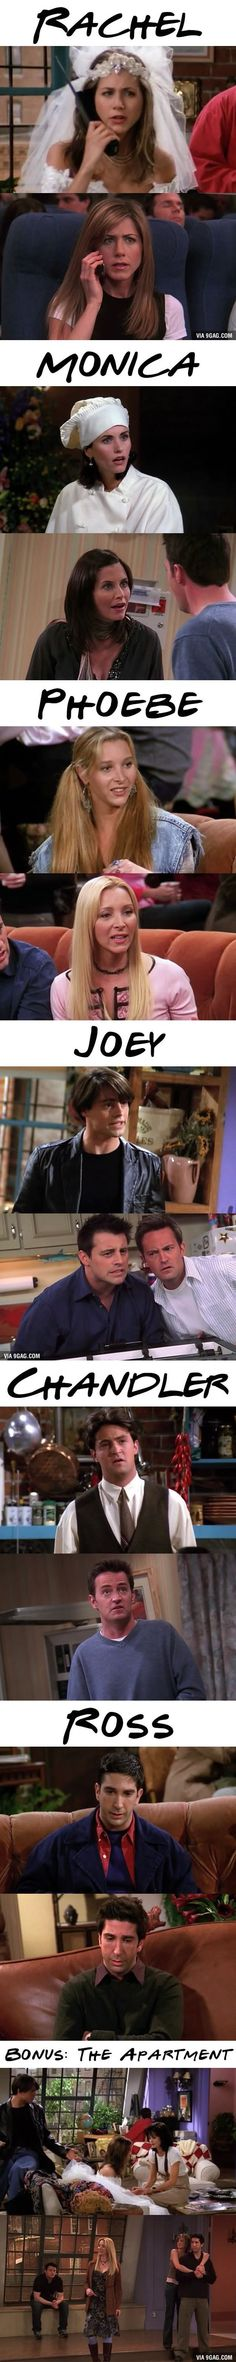 "The Cast Of ""Friends"" On The First Episode (1994) Vs. The Last Episode (2004)"